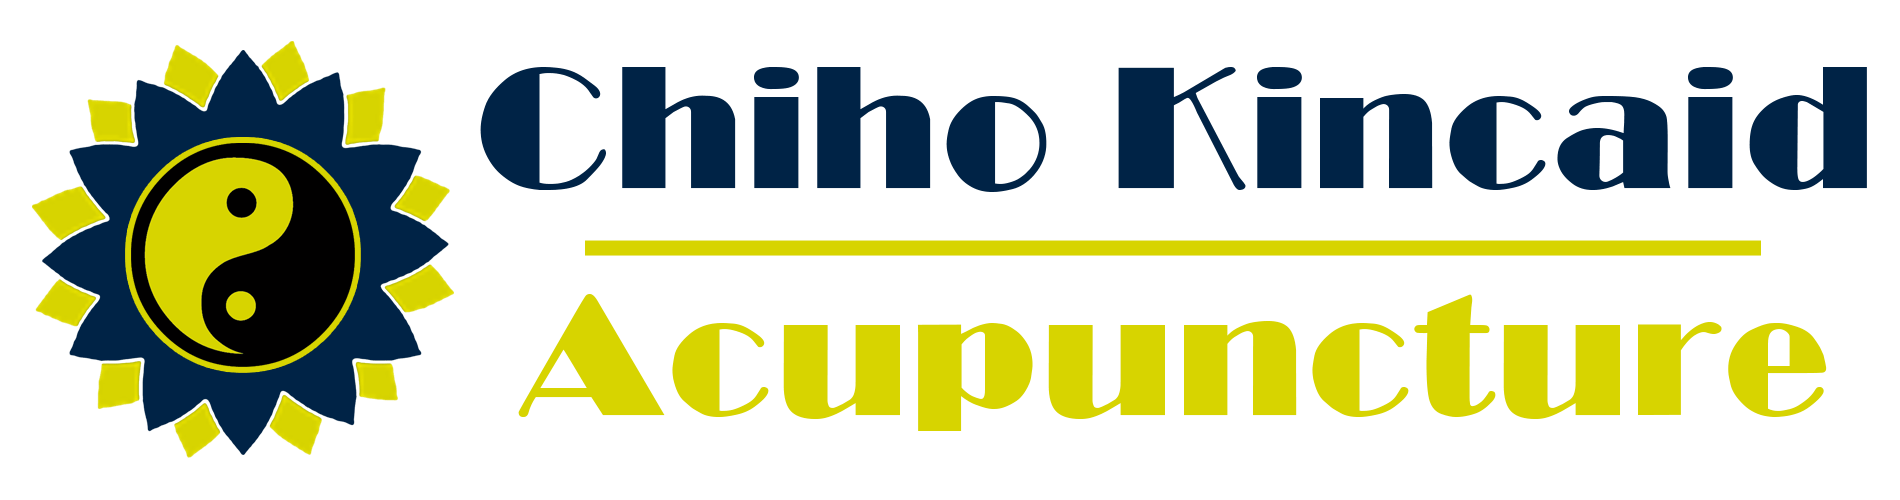 Chiho Kincaid Acupuncture